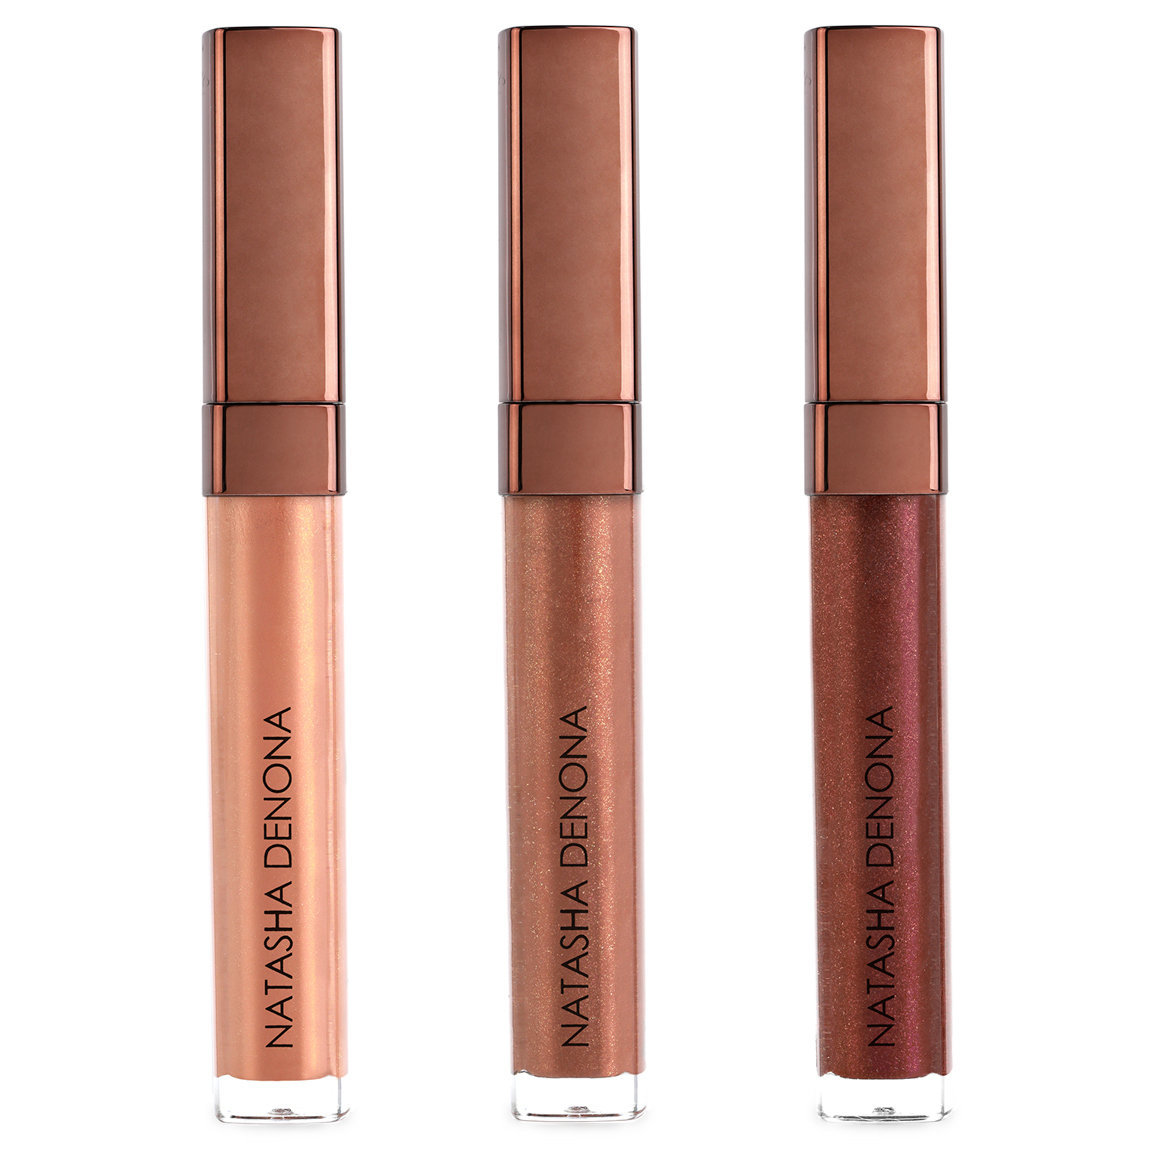 Natasha Denona The Bronze Collection Lip Oh-Phoria Gloss & Balm Bundle alternative view 1 - product swatch.